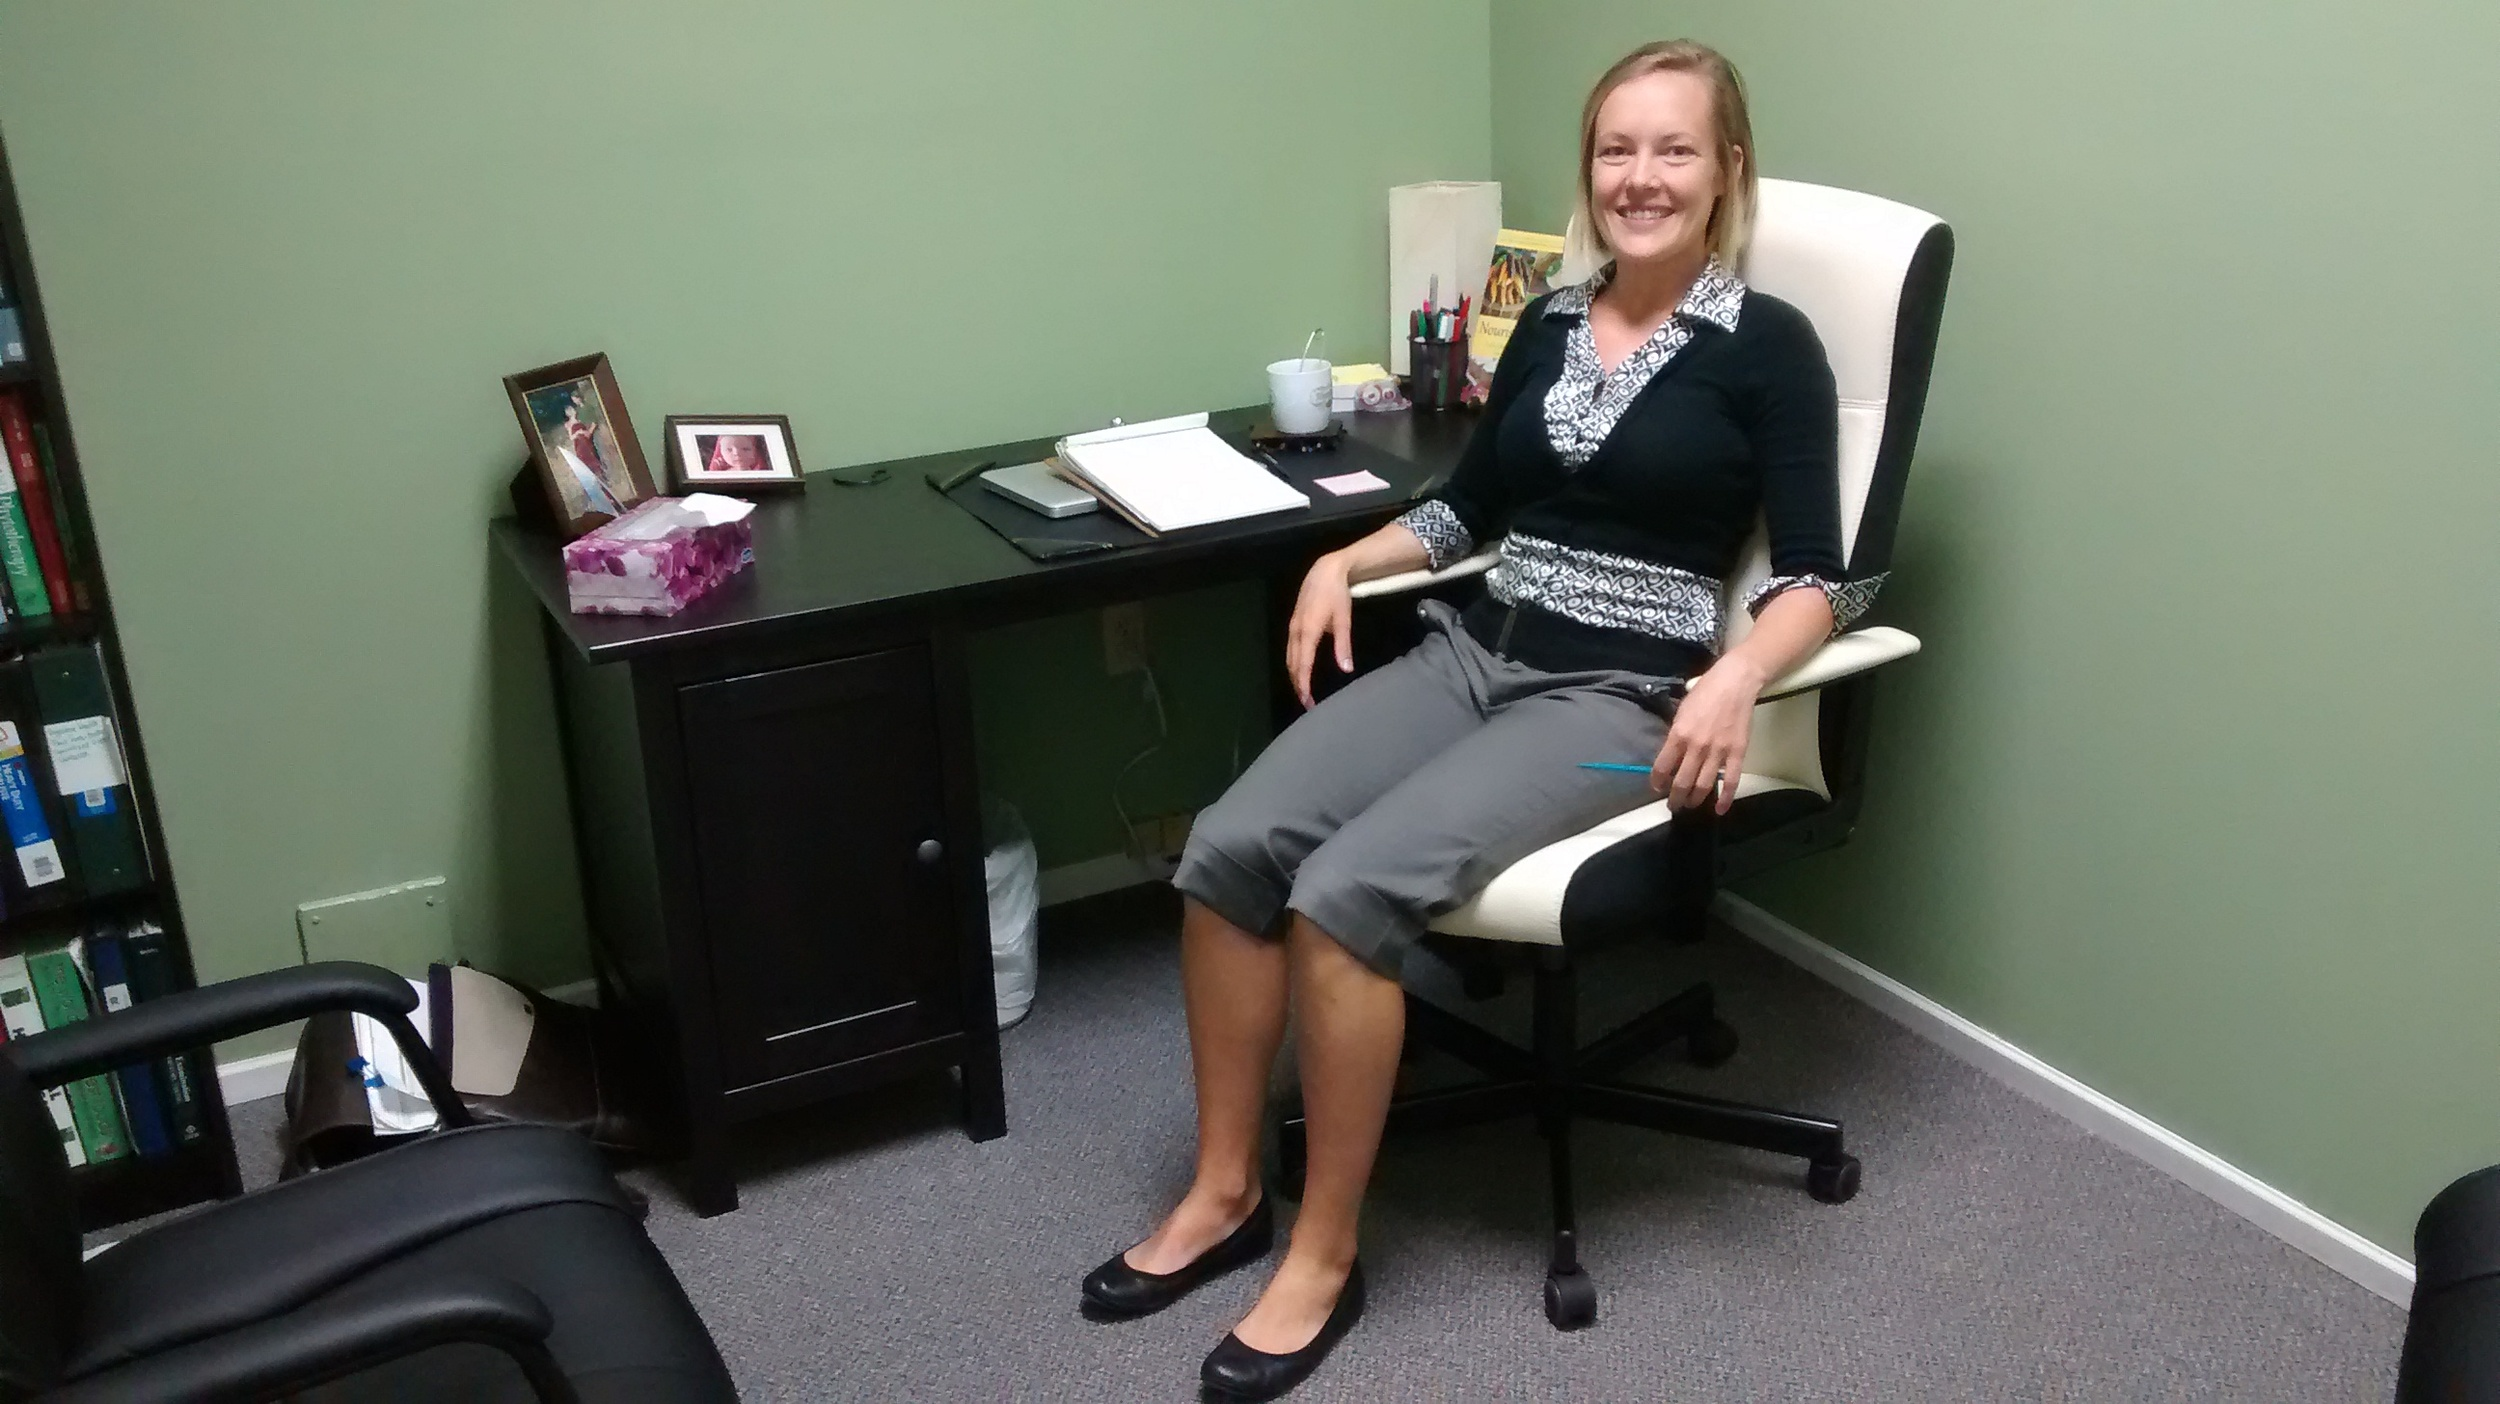 Dr. Luterbach uses SLIT therapy for relief from airborne spring allergies